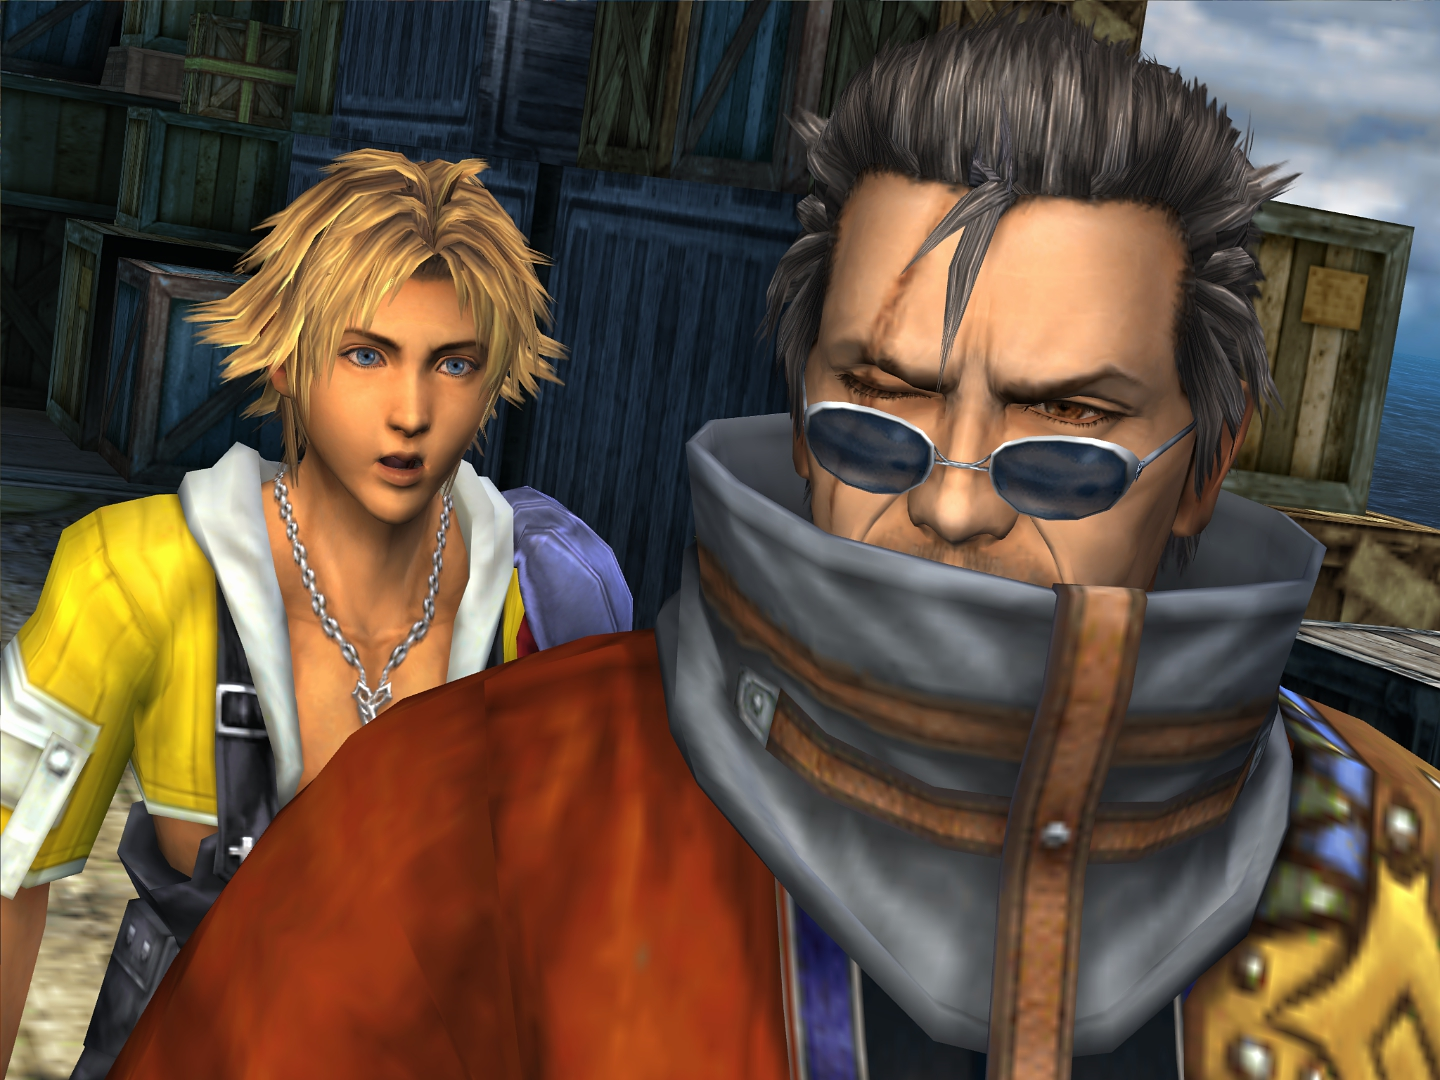 auron and tidus